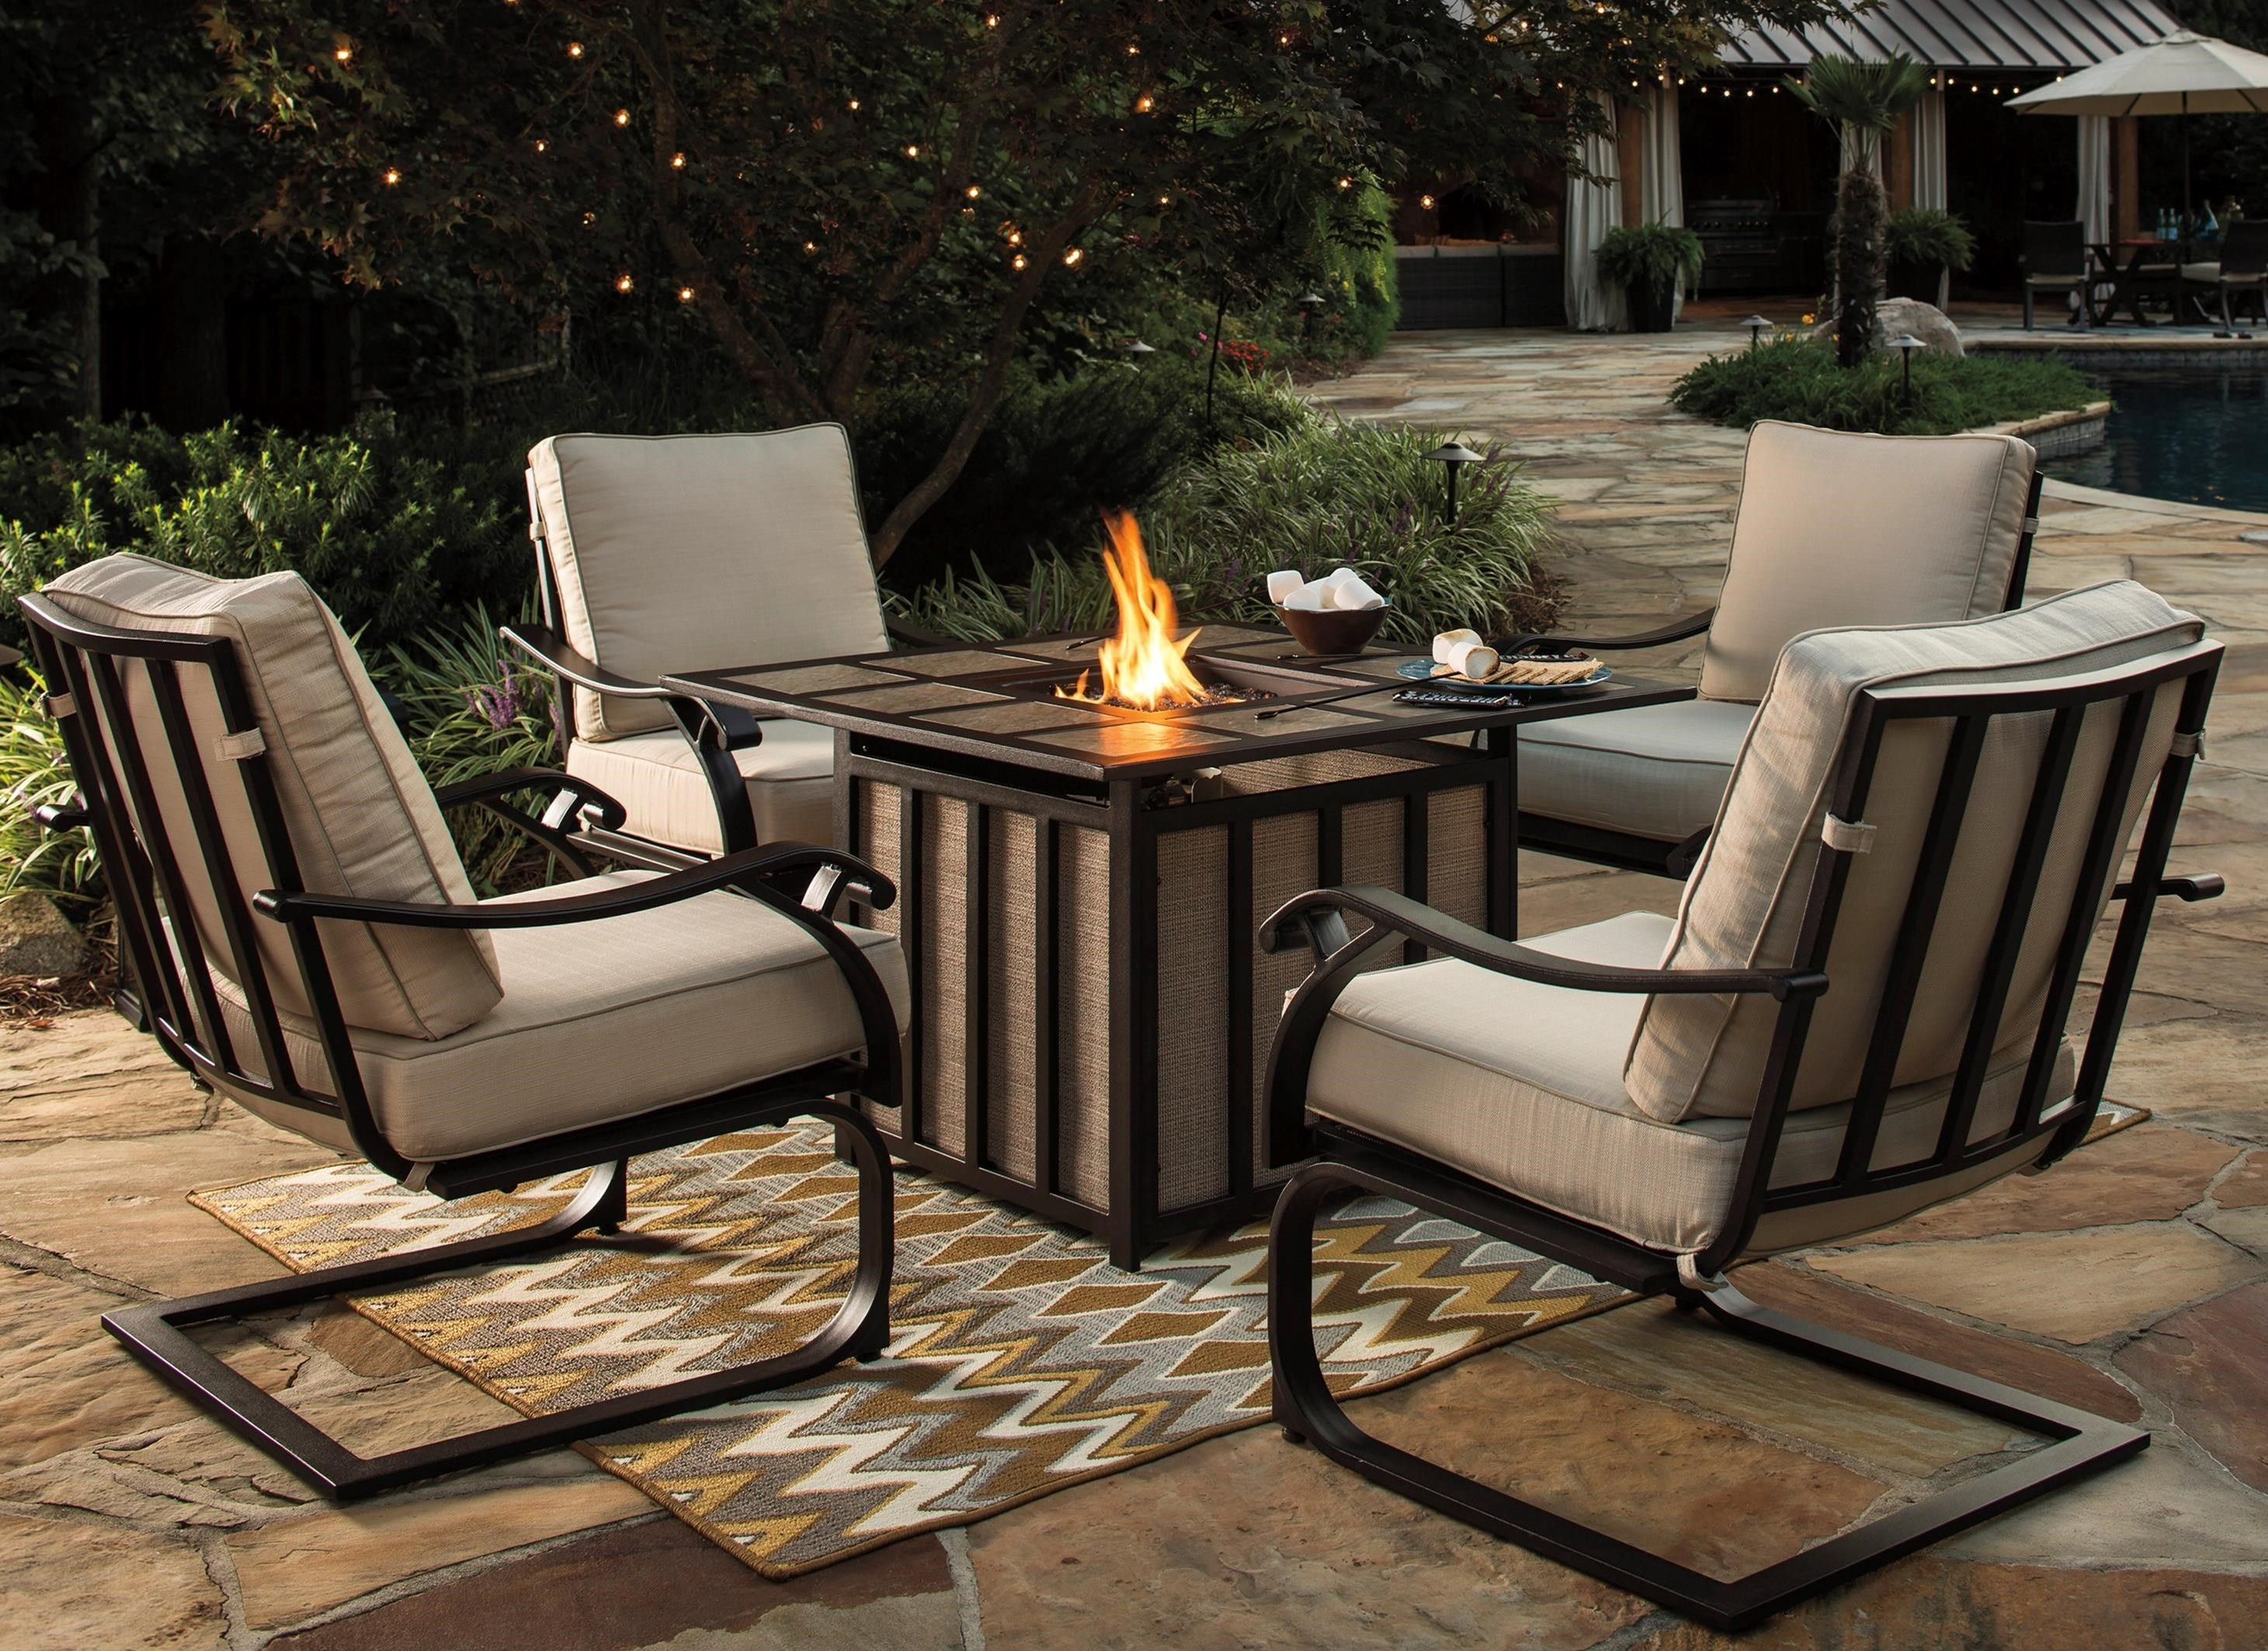 Wandon Outdoor 5 Piece Fire Pit Table Set By Signature Design Ashley